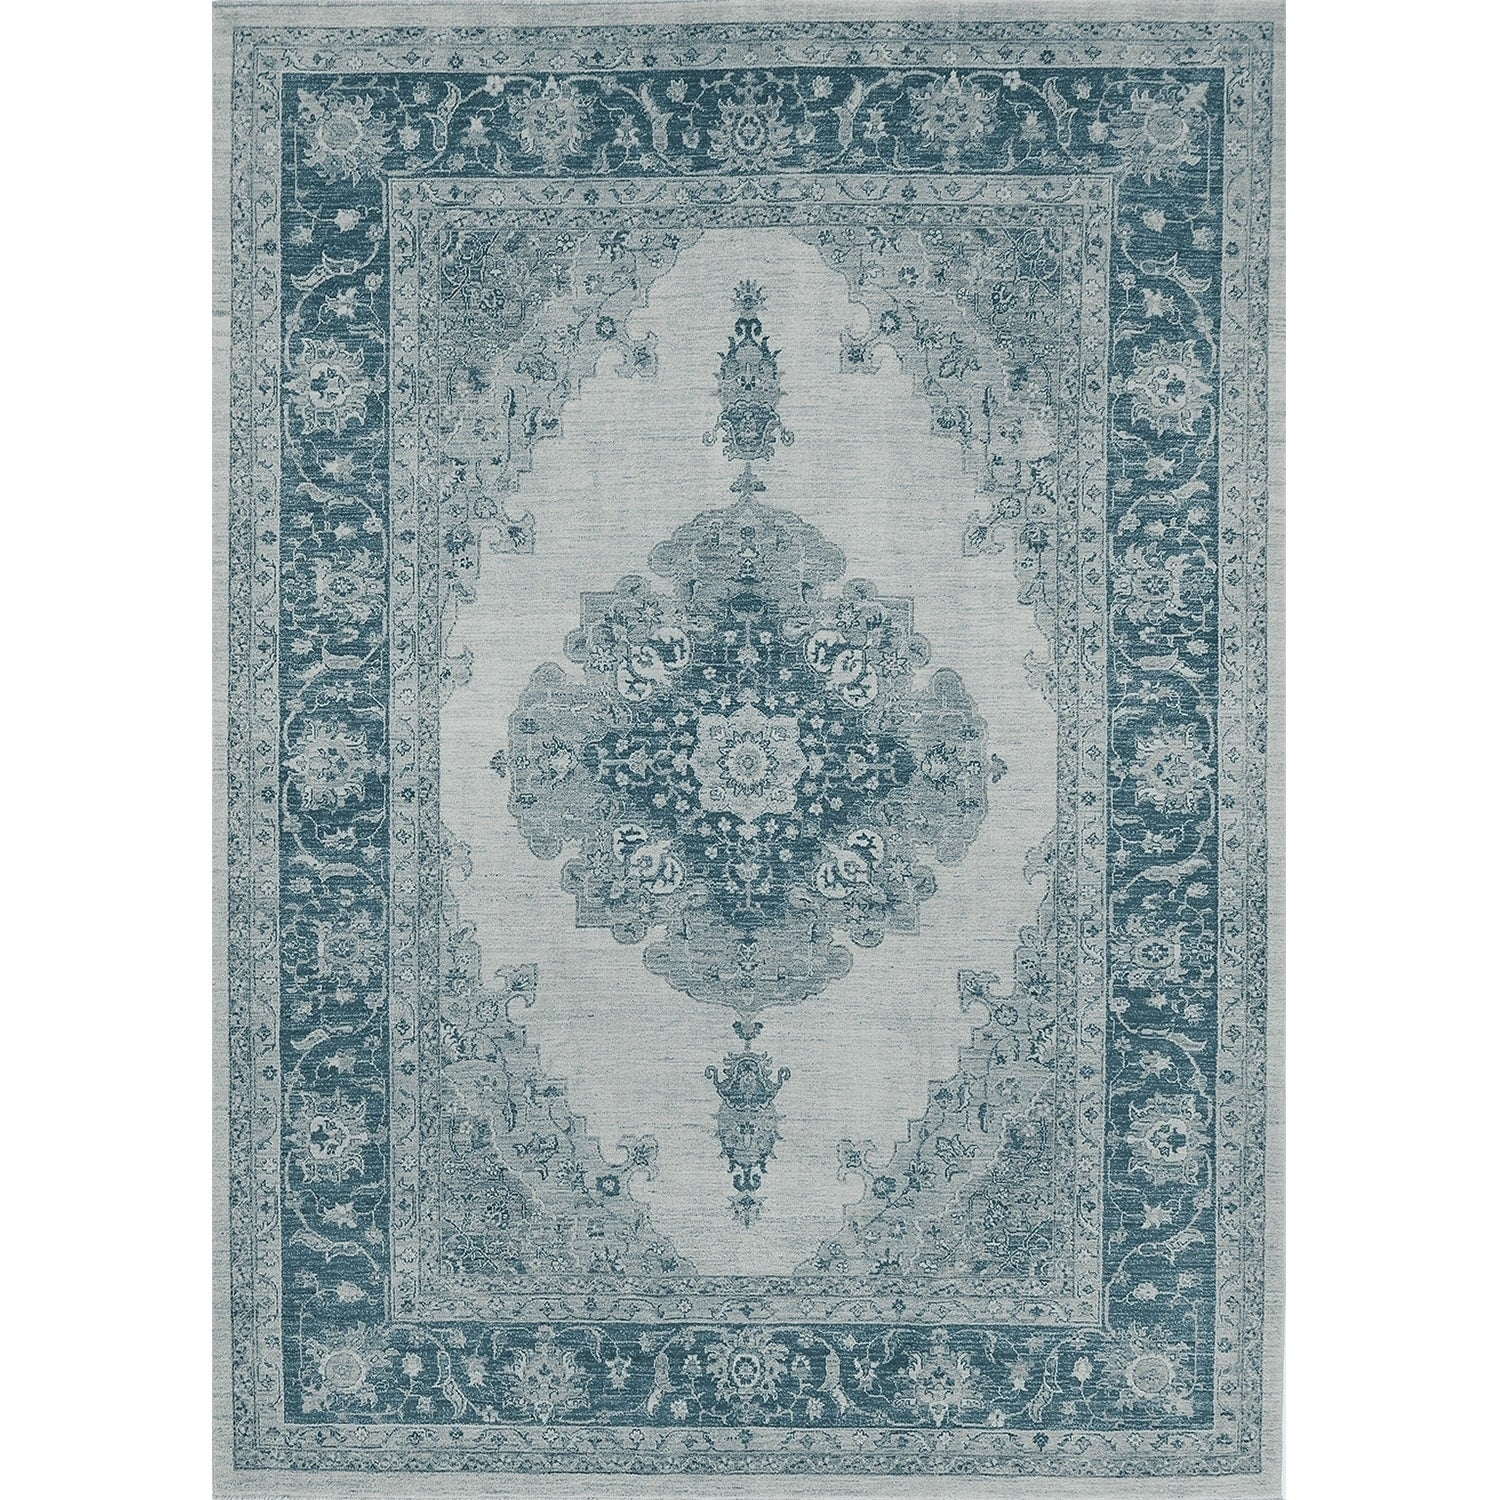 Details About Parisa Blue Ruggable Washable Indoor Outdoor Stain Resistant Pet Area Rug 5x7